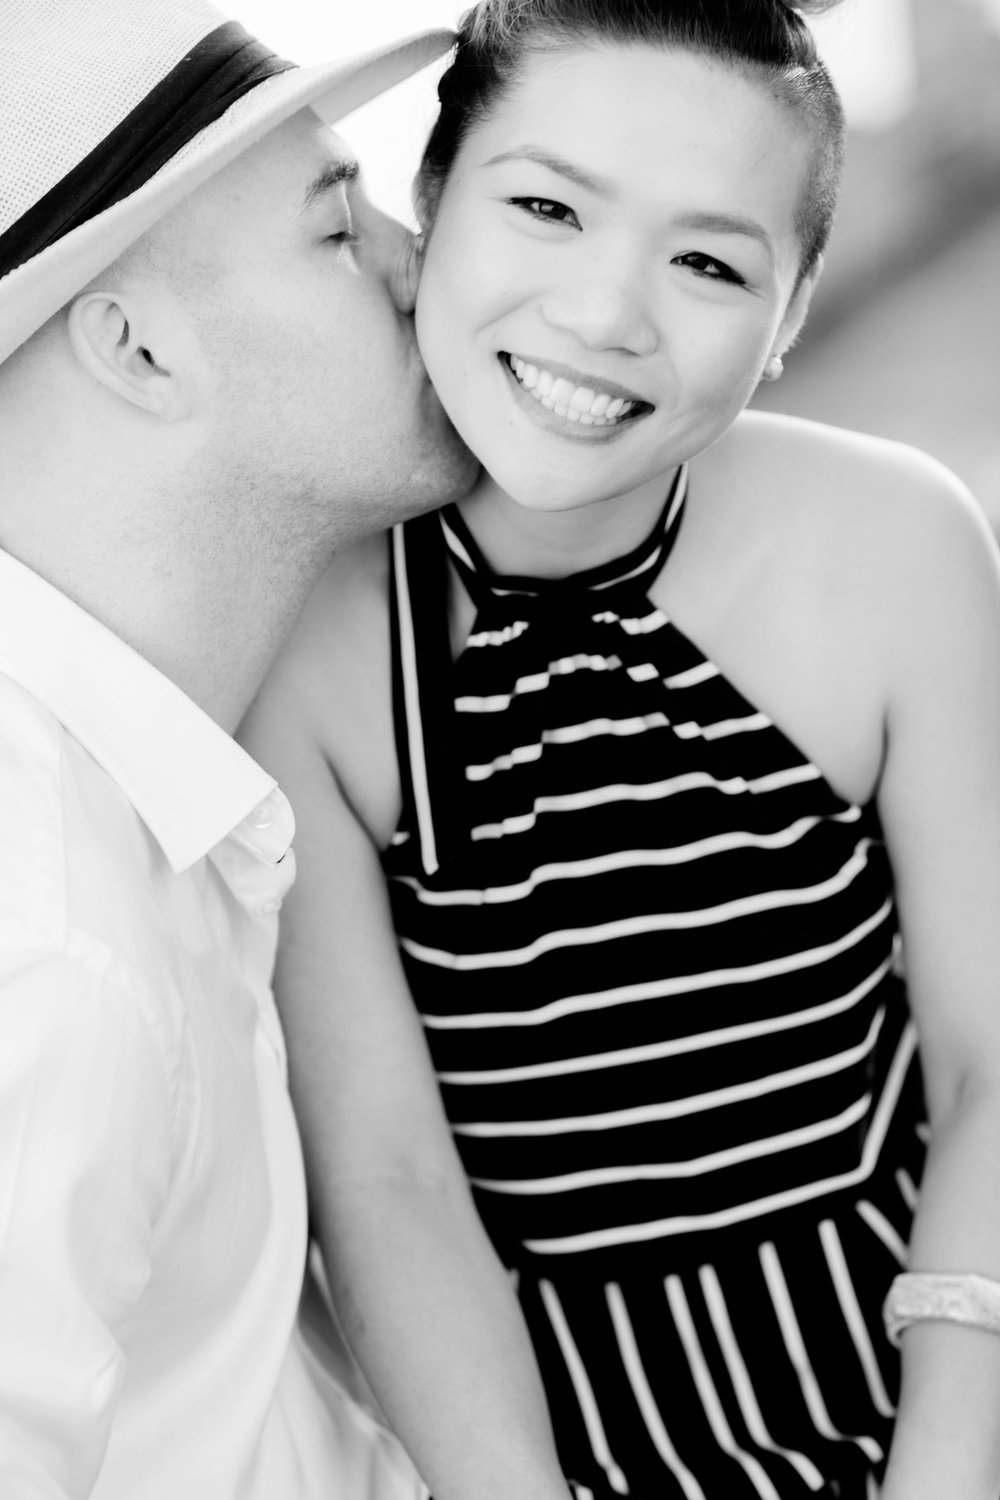 Couples session Pyrmont Photography by Mr Edwards Sydney_3503.jpg